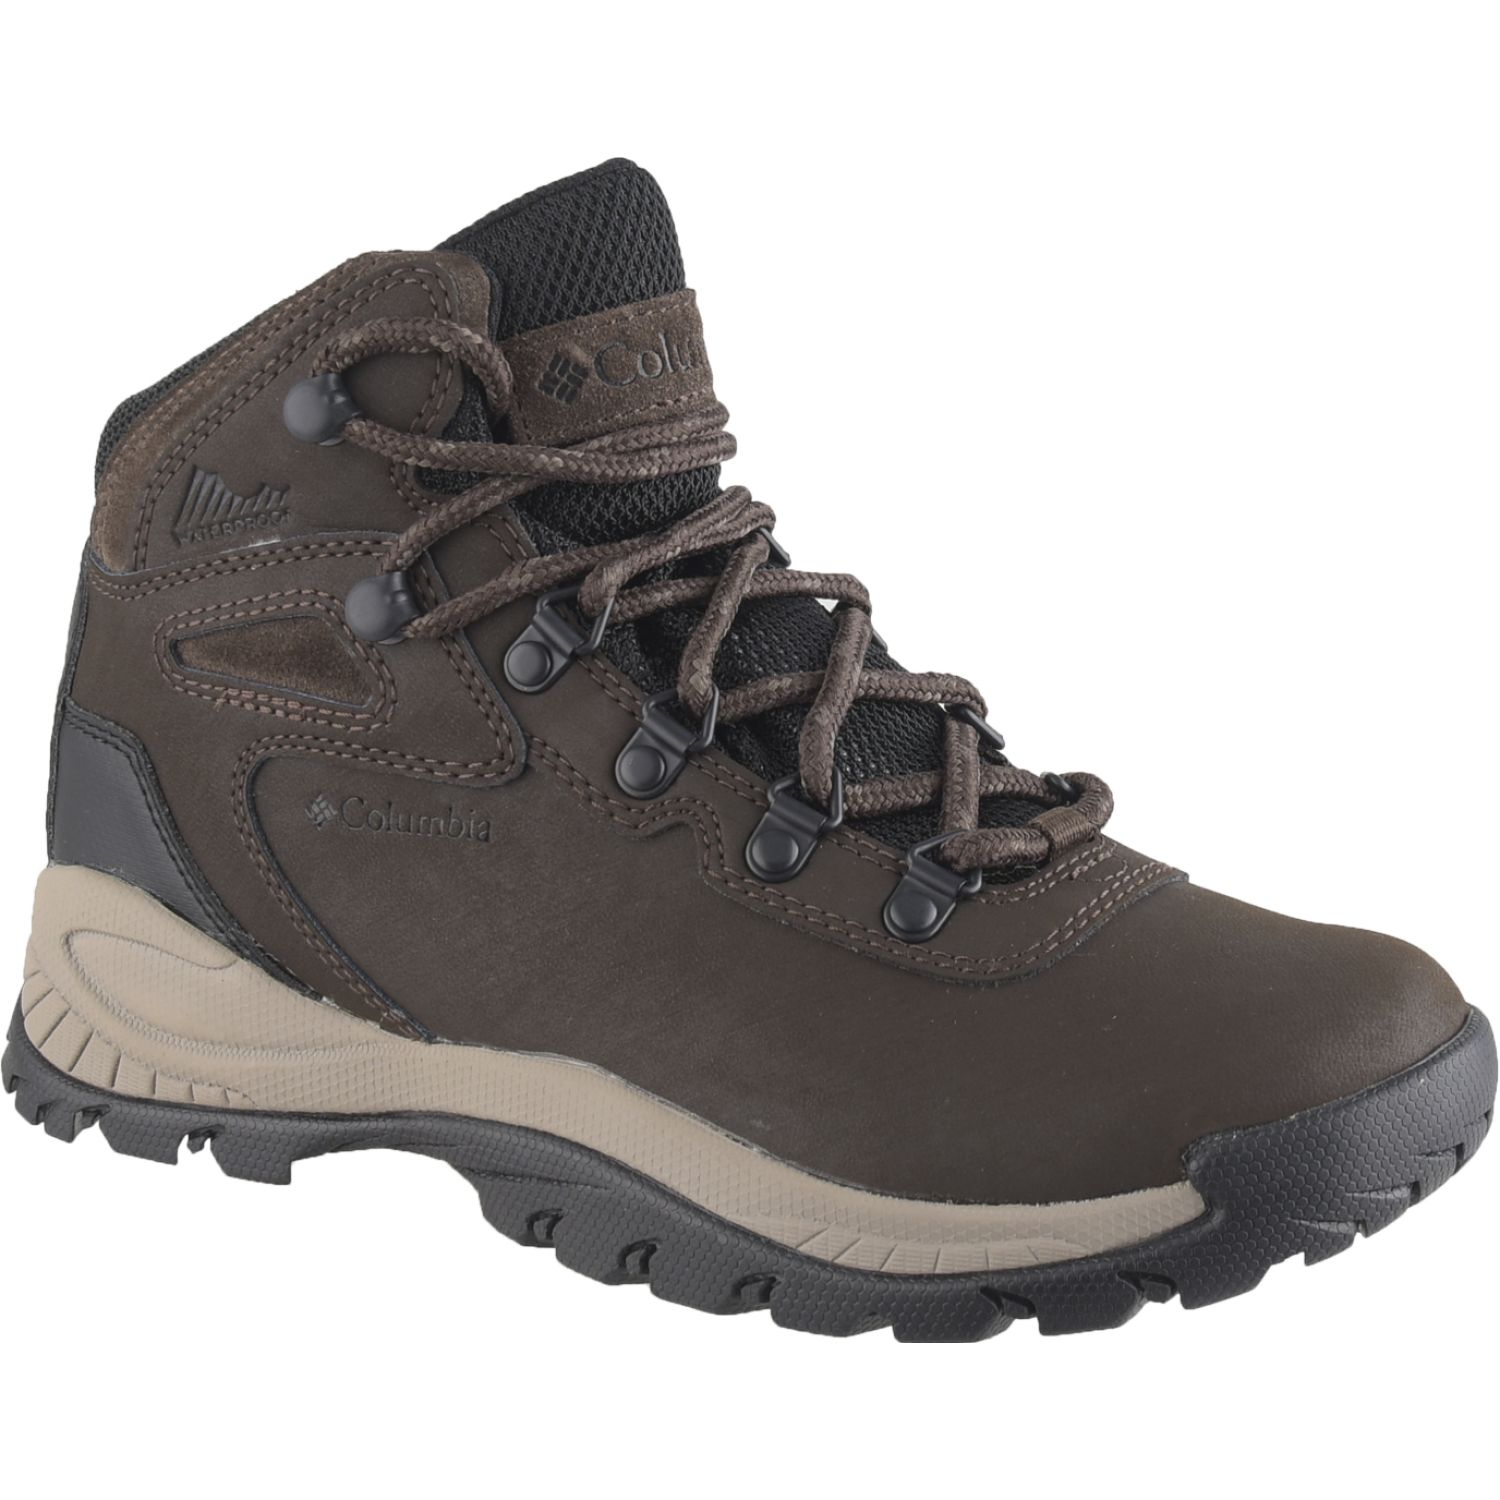 Columbia newton ridge plus Marron Calzado hiking